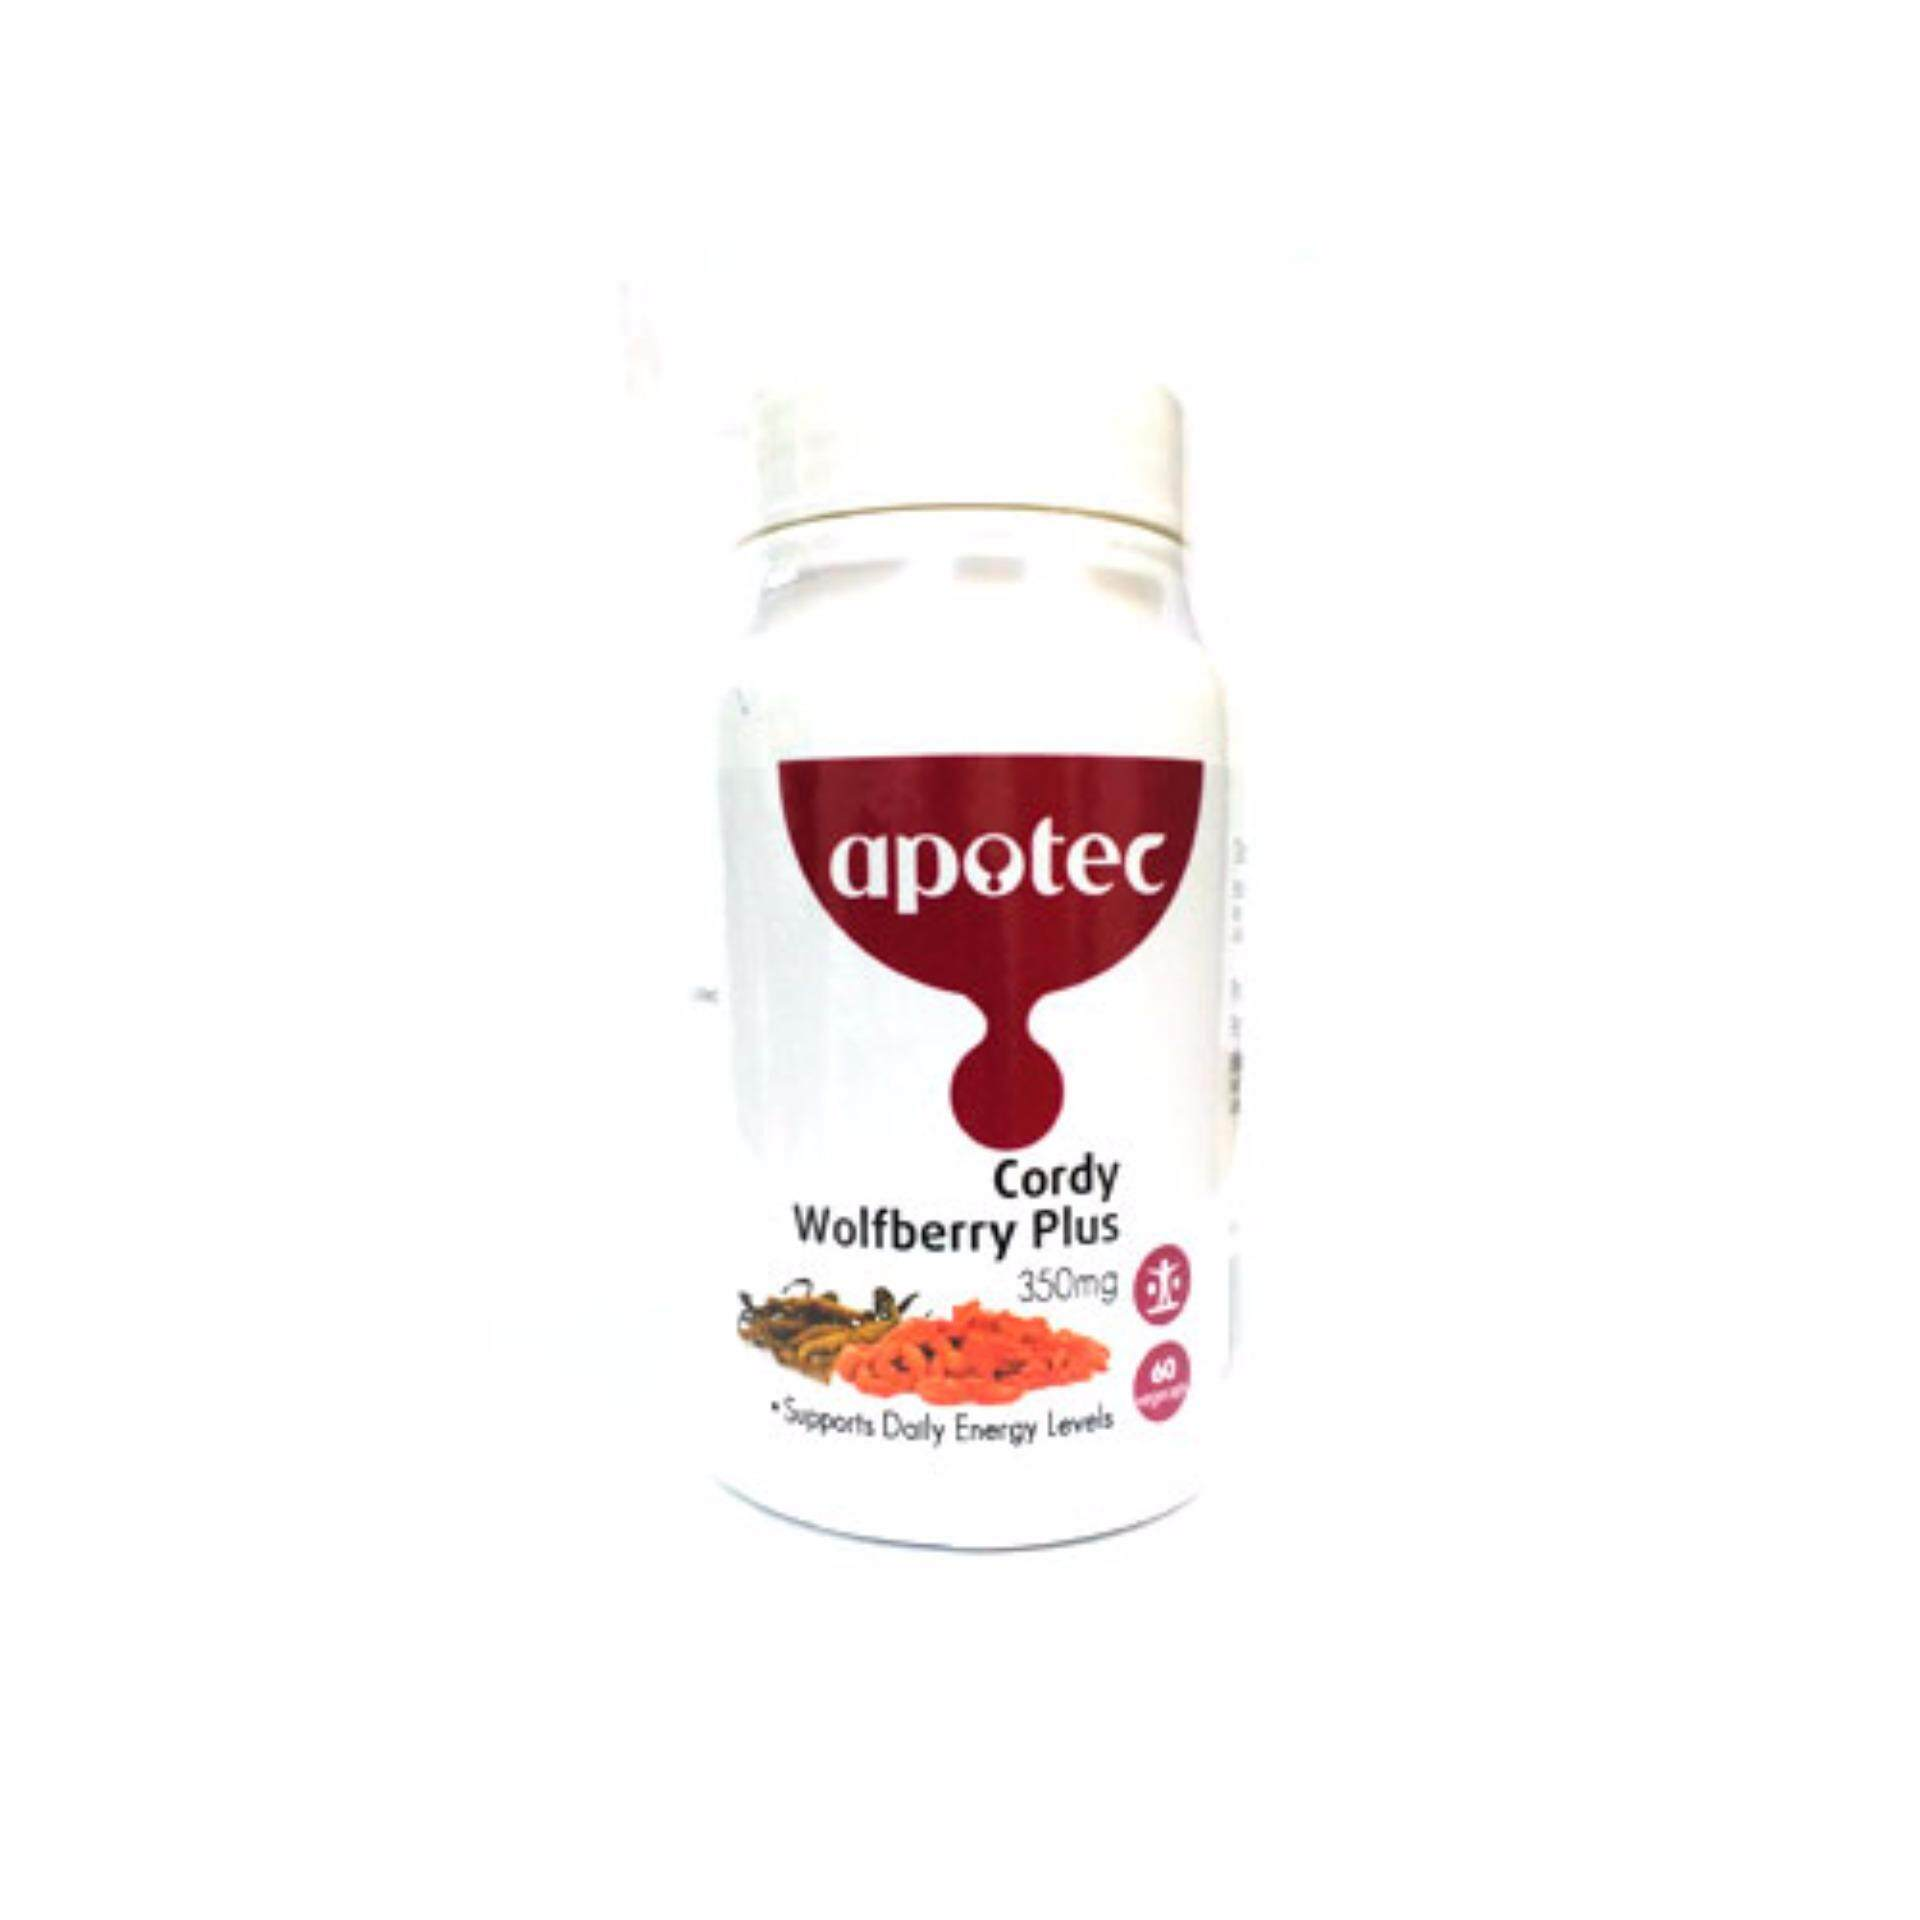 Apotec Cordy Wolfberry Plus 350mg 60s